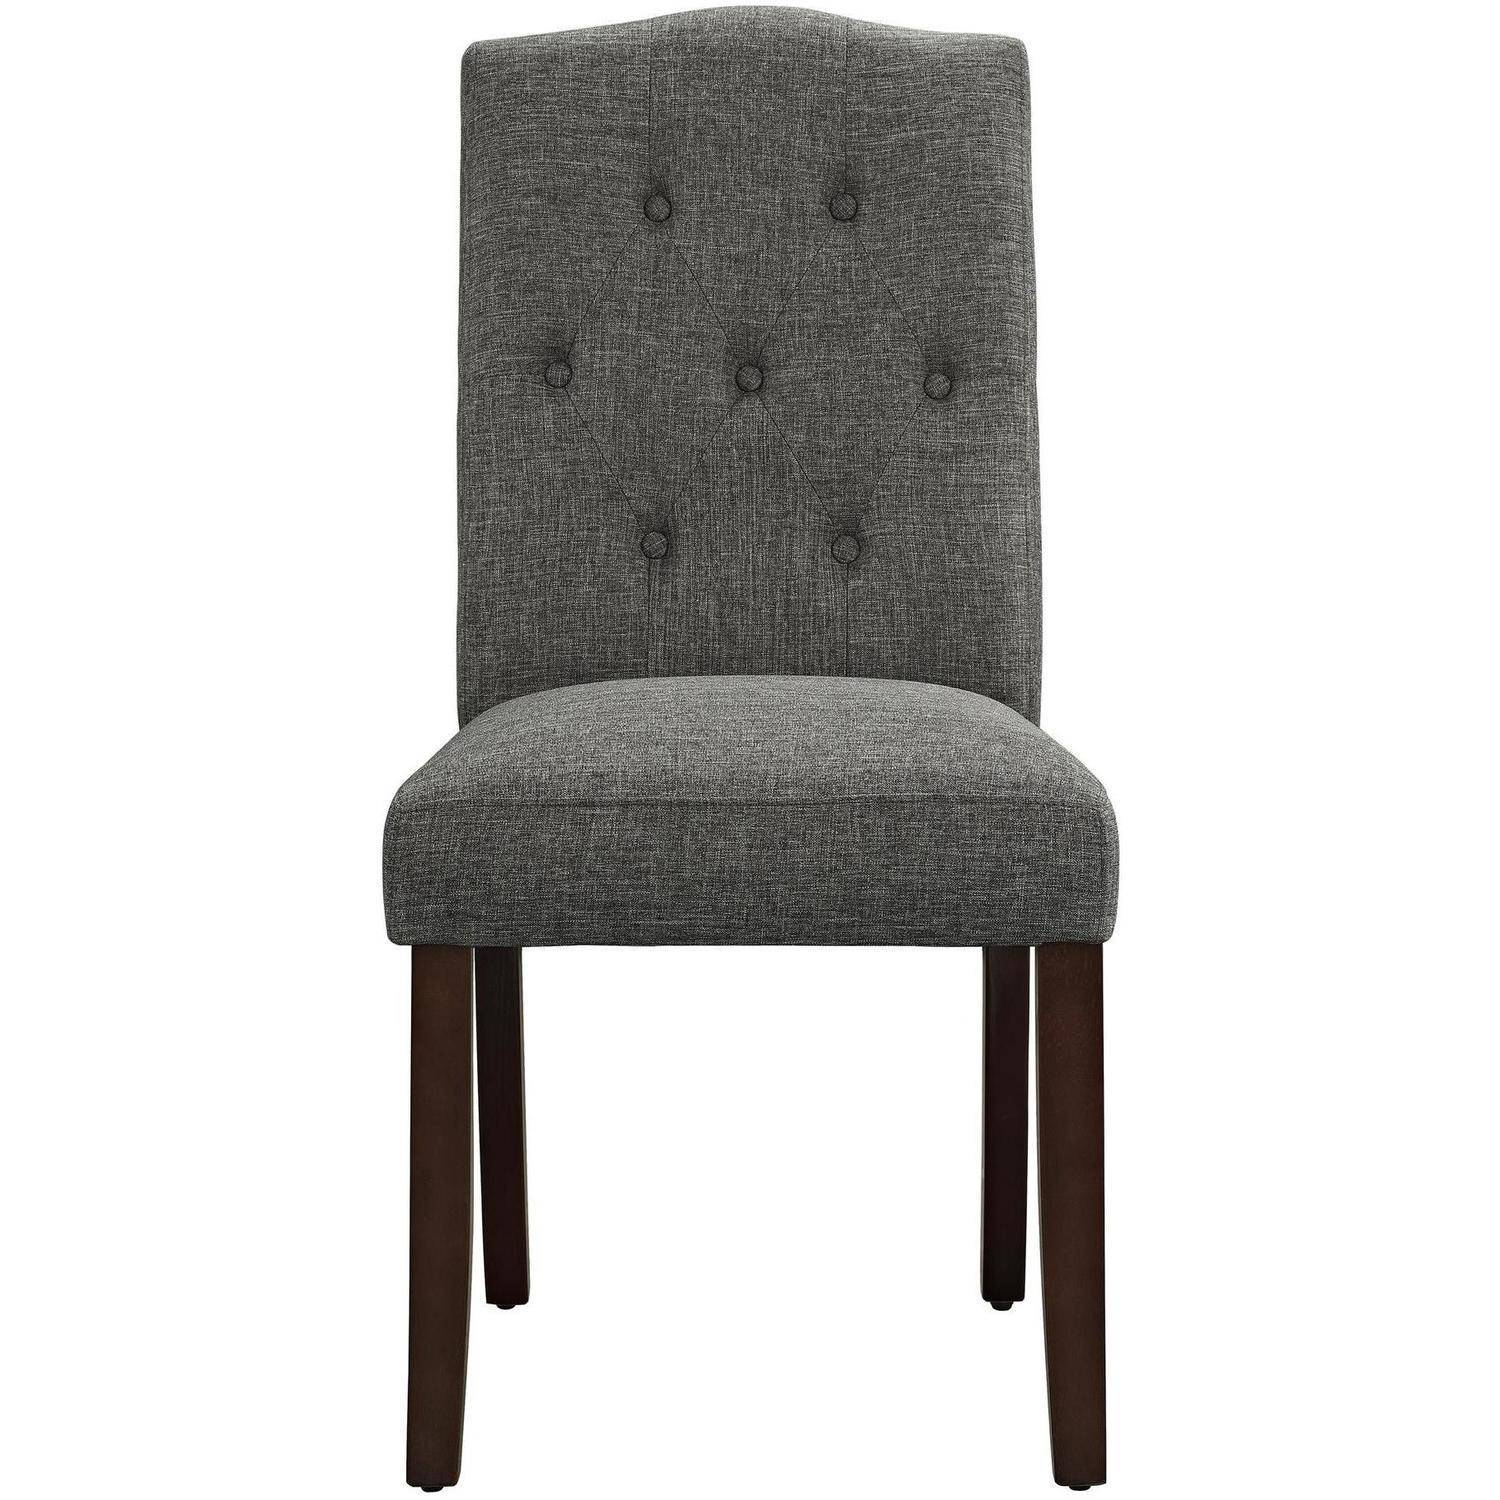 Tufted Dining Chair | Upholstered Side Chairs | Upholstered Kitchen Chairs